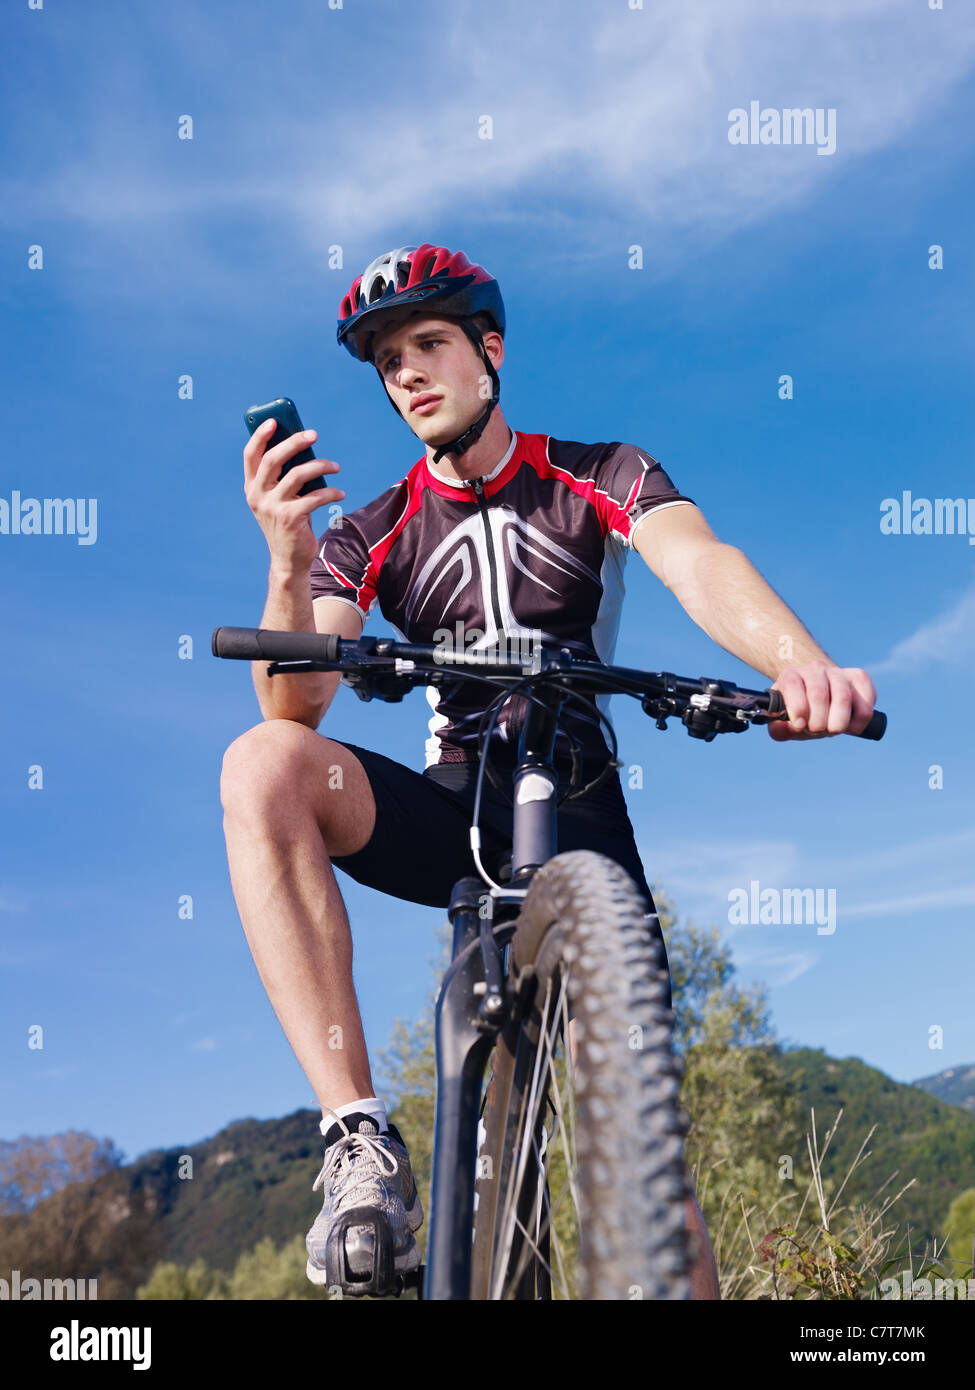 sports activity: young adult cyclist riding mountain bike and text messaging on cellphone. Vertical shape, low angle - Stock Image